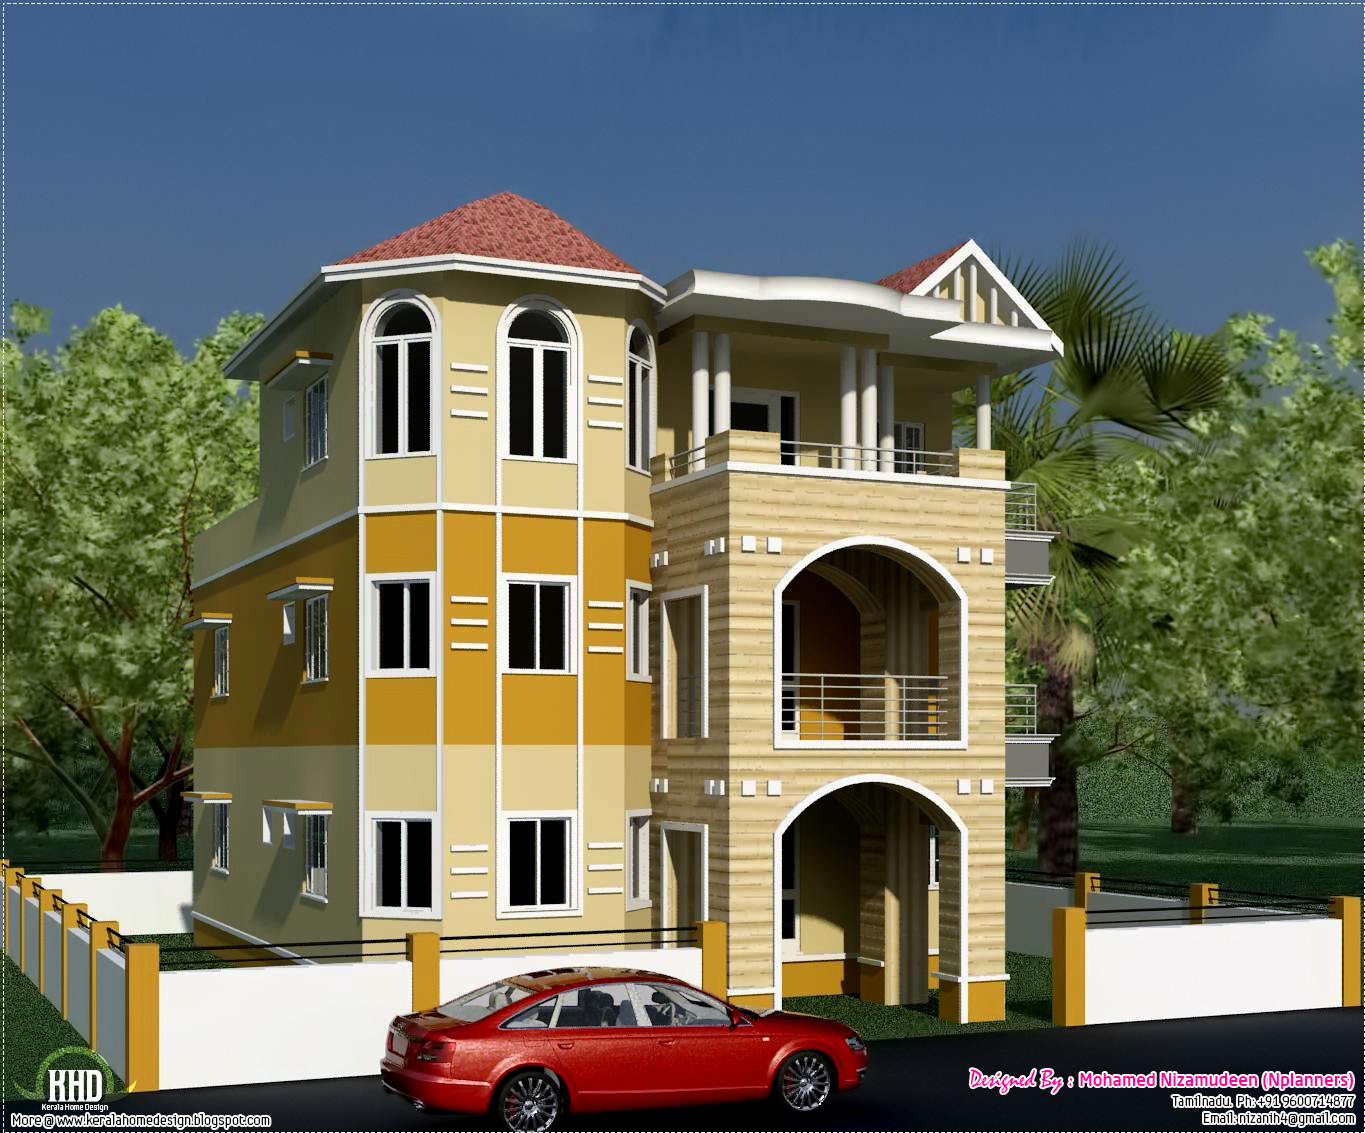 3 storey south indian house design architecture house plans for 3 floor house design